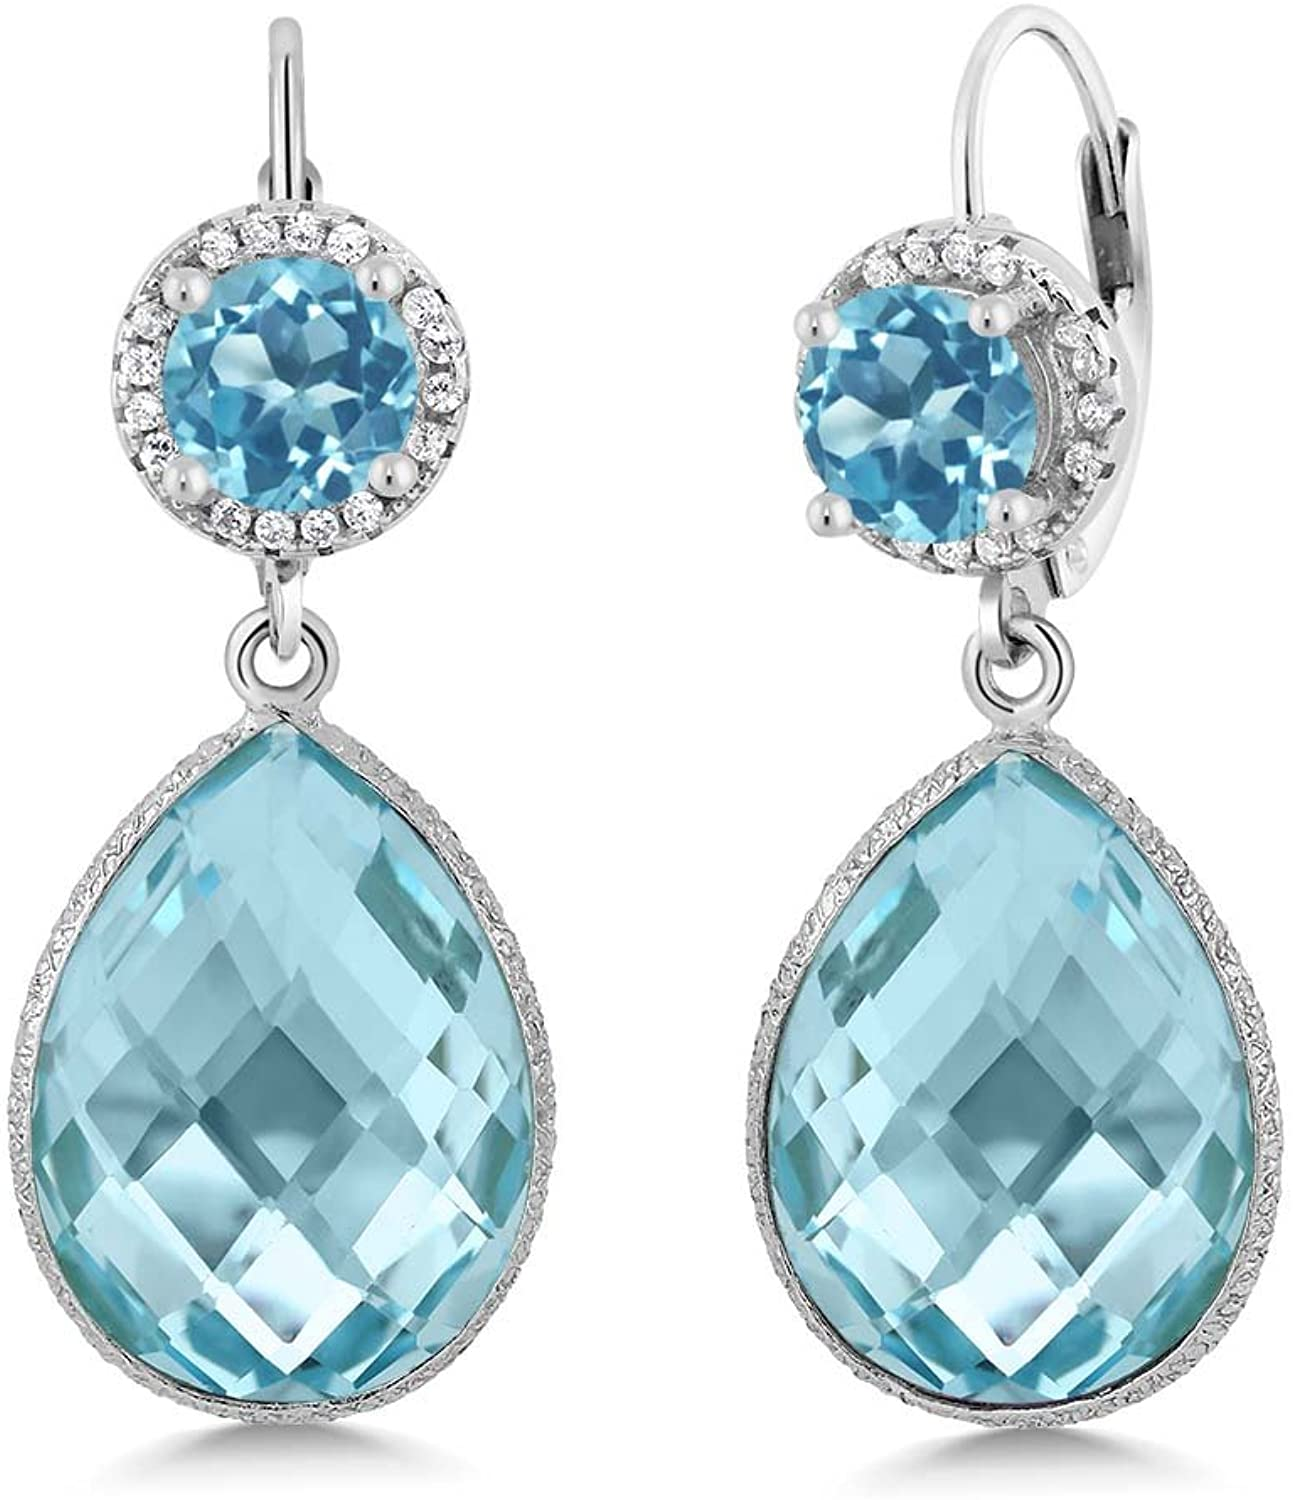 1.80 Ct Round Swiss bluee Topaz Swiss bluee Topaz 925 Sterling Silver Earrings